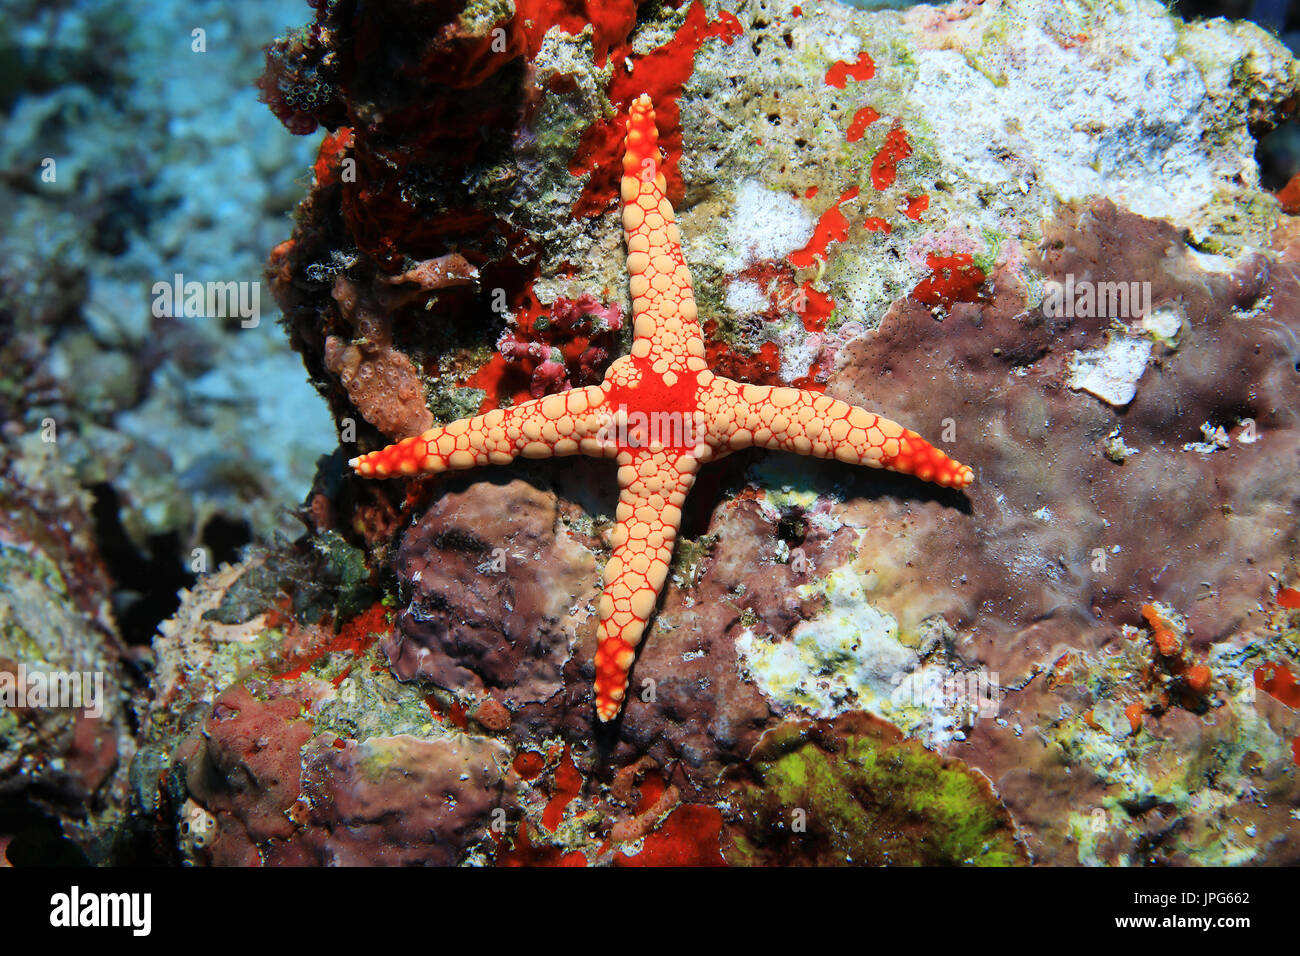 Abnormal starfish (Fromia nodosa) with only four arms - Stock Image